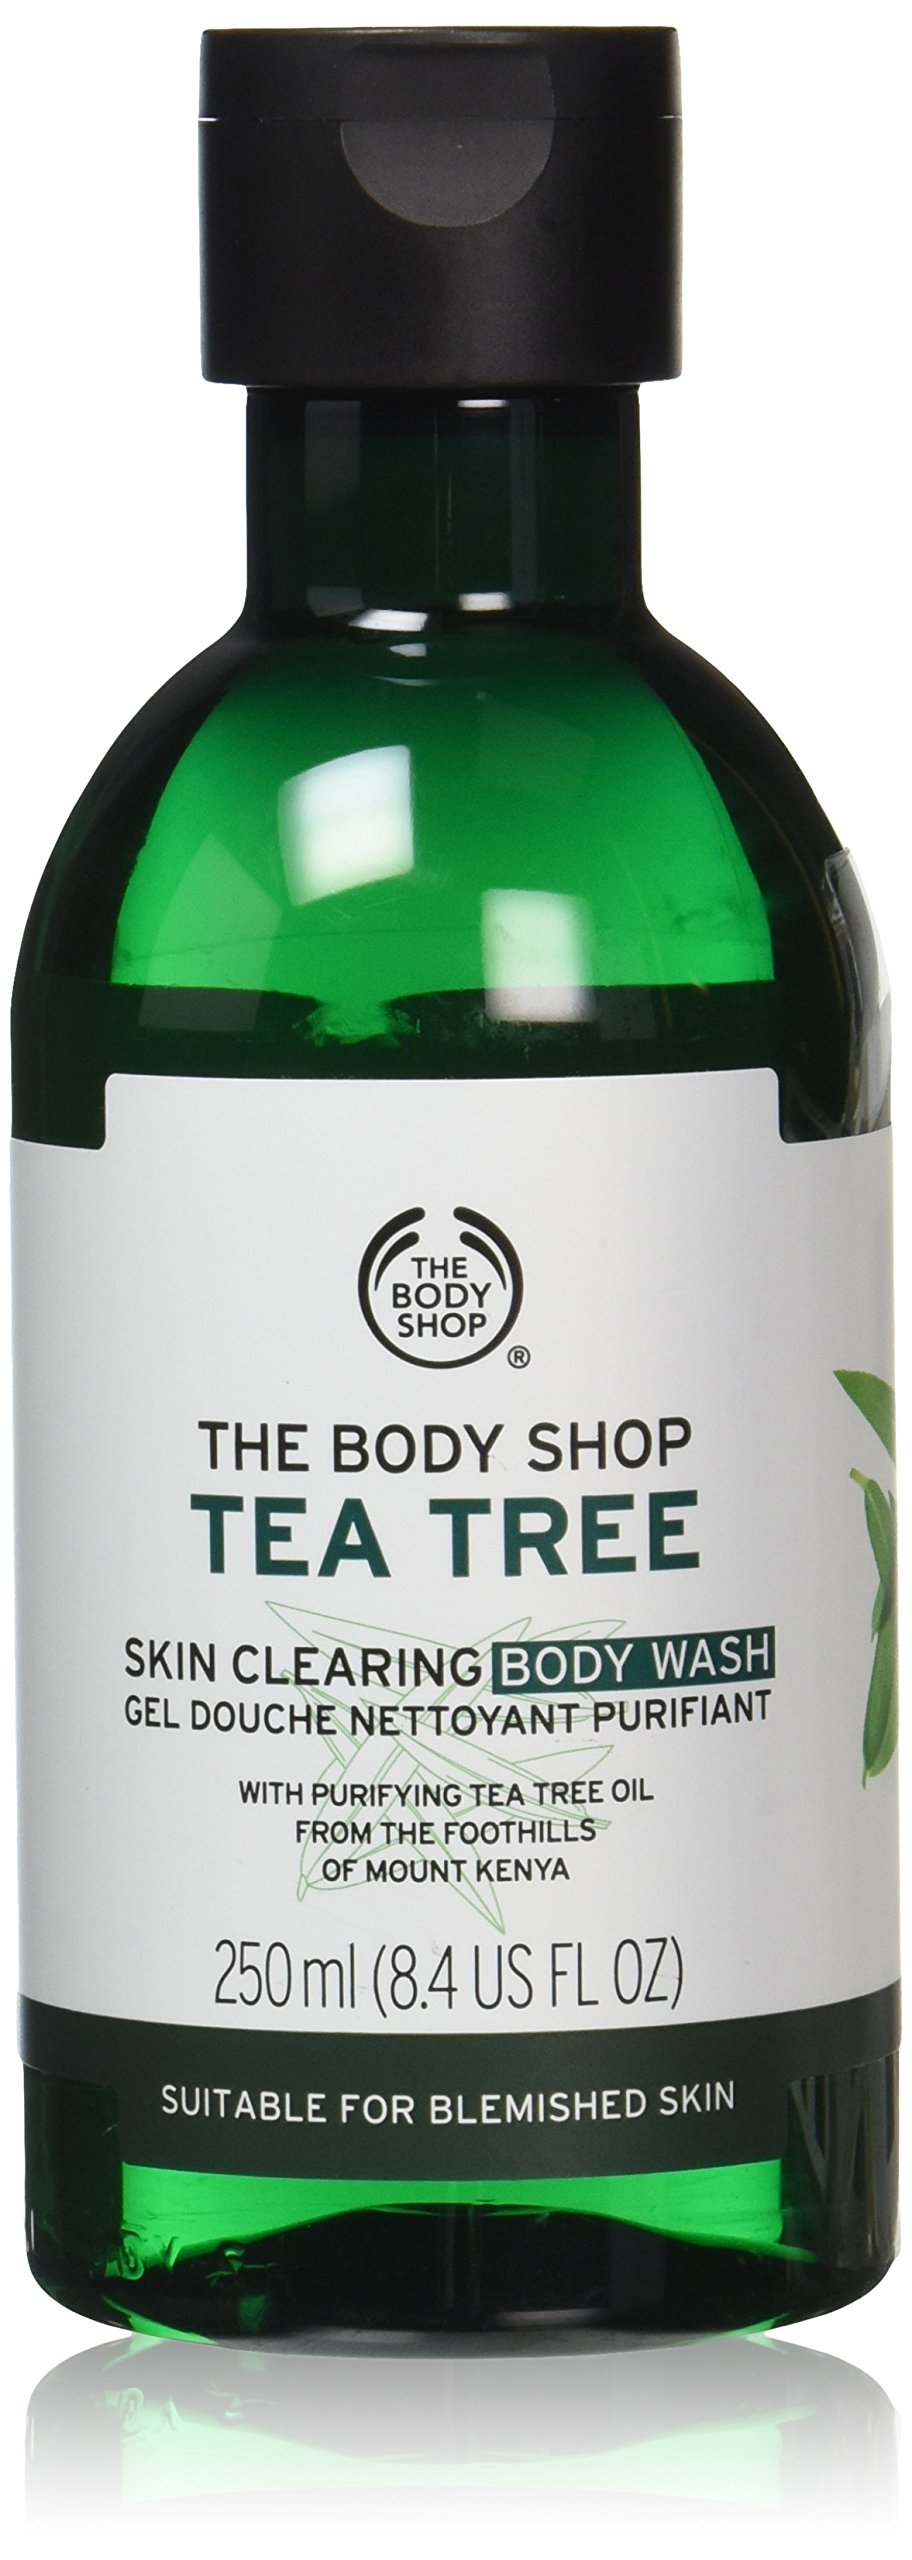 The Body Shop Tea Tree Skin Clearing Body Wash, 8.4 Fl Oz (Vegan) by The Body Shop